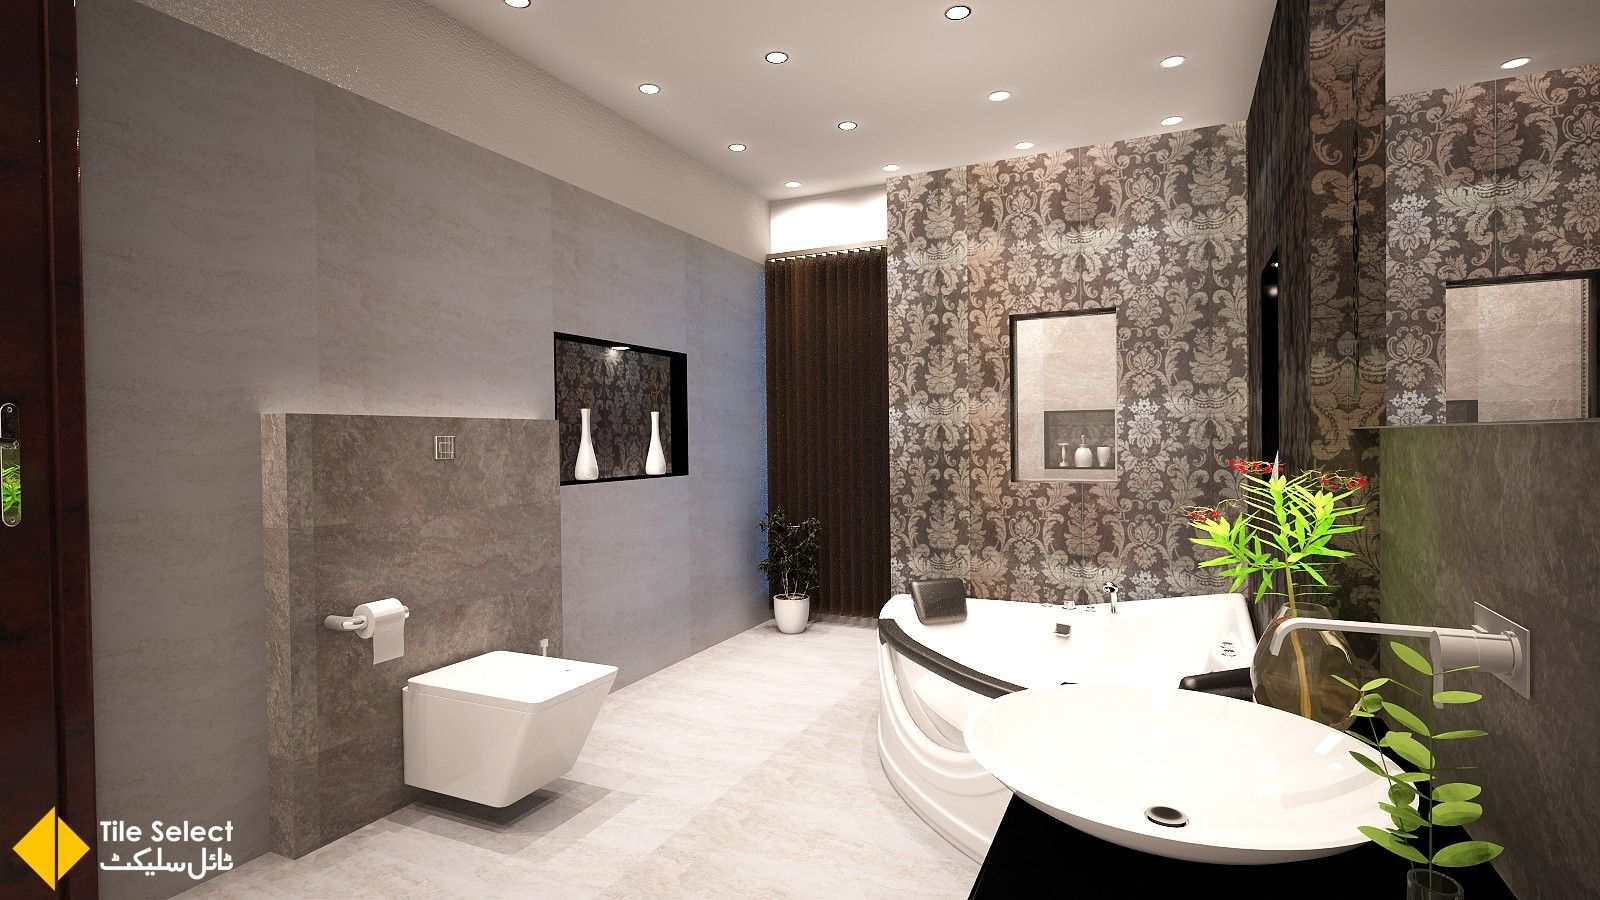 Inspire Your Home Improvement Project These Artistic Tiles And Sanitary Wares Update Your Bathroom Look Visit Ou Home Improvement Projects Artistic Tile Home